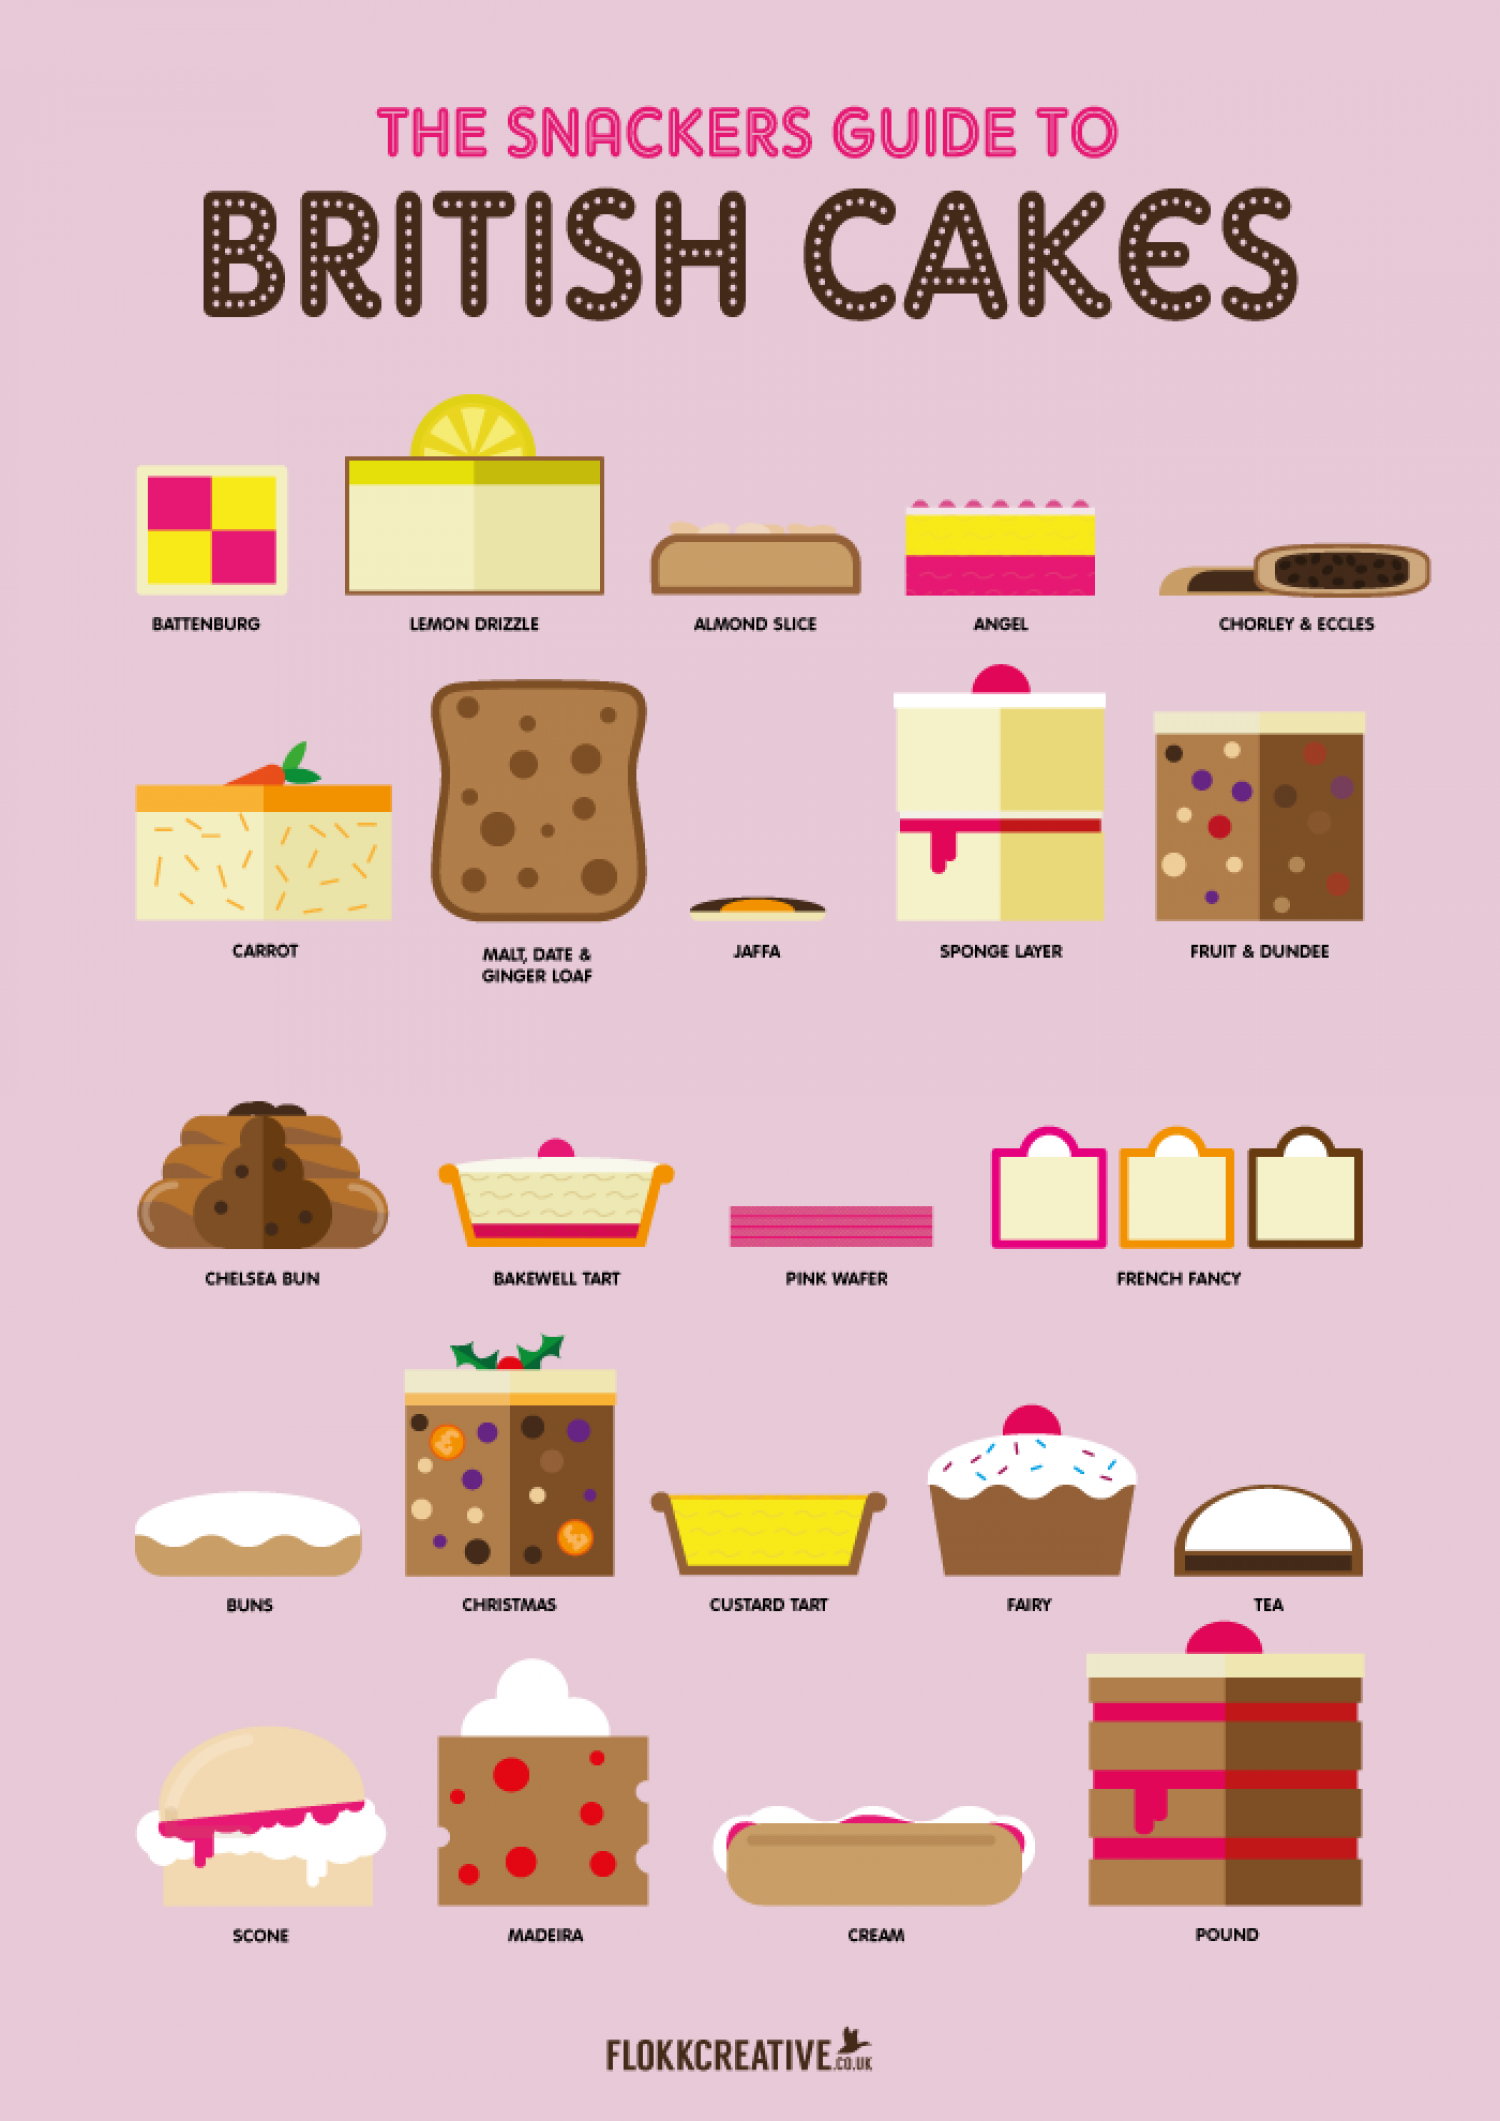 Cake Images And Names : Different British Cakes - 23 Different British Cakes